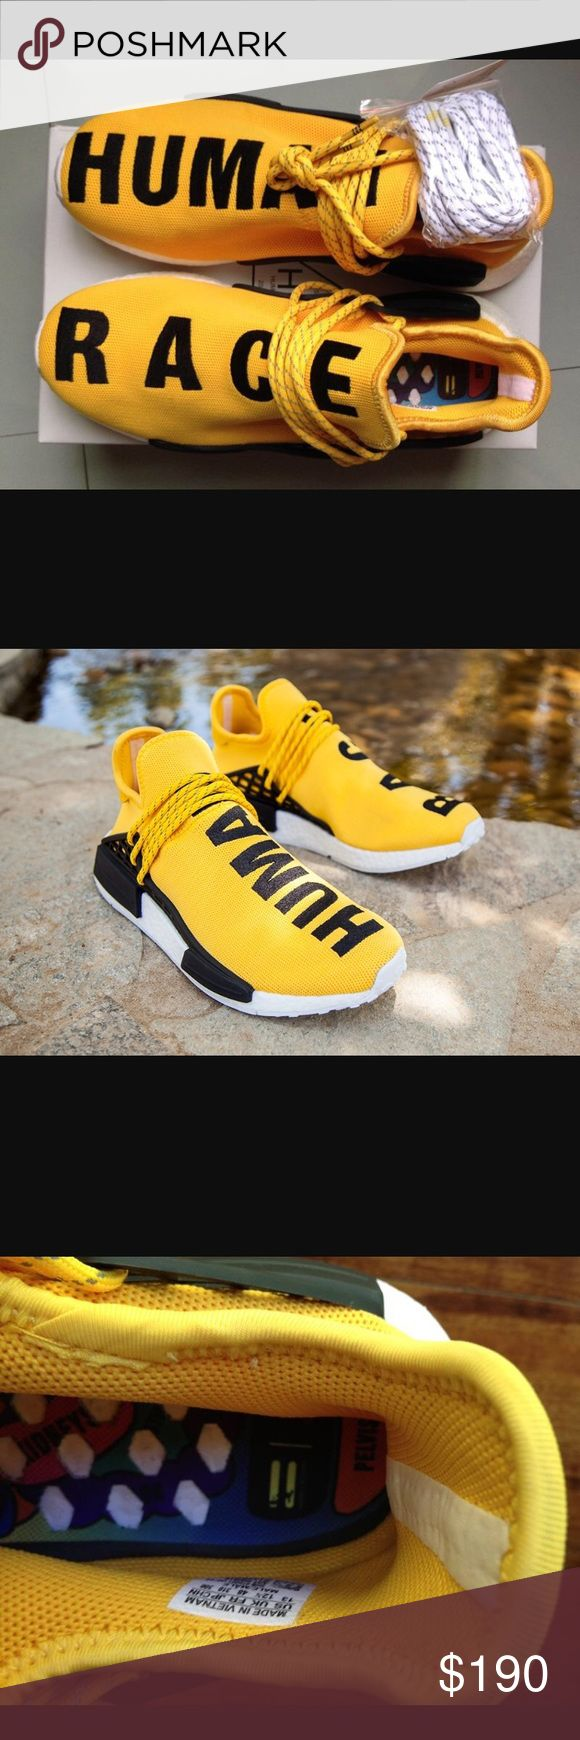 Human race shoes Human race shoe, Adidas, design by Pharrell Williams, very comfy shoes adidas Shoes Sneakers